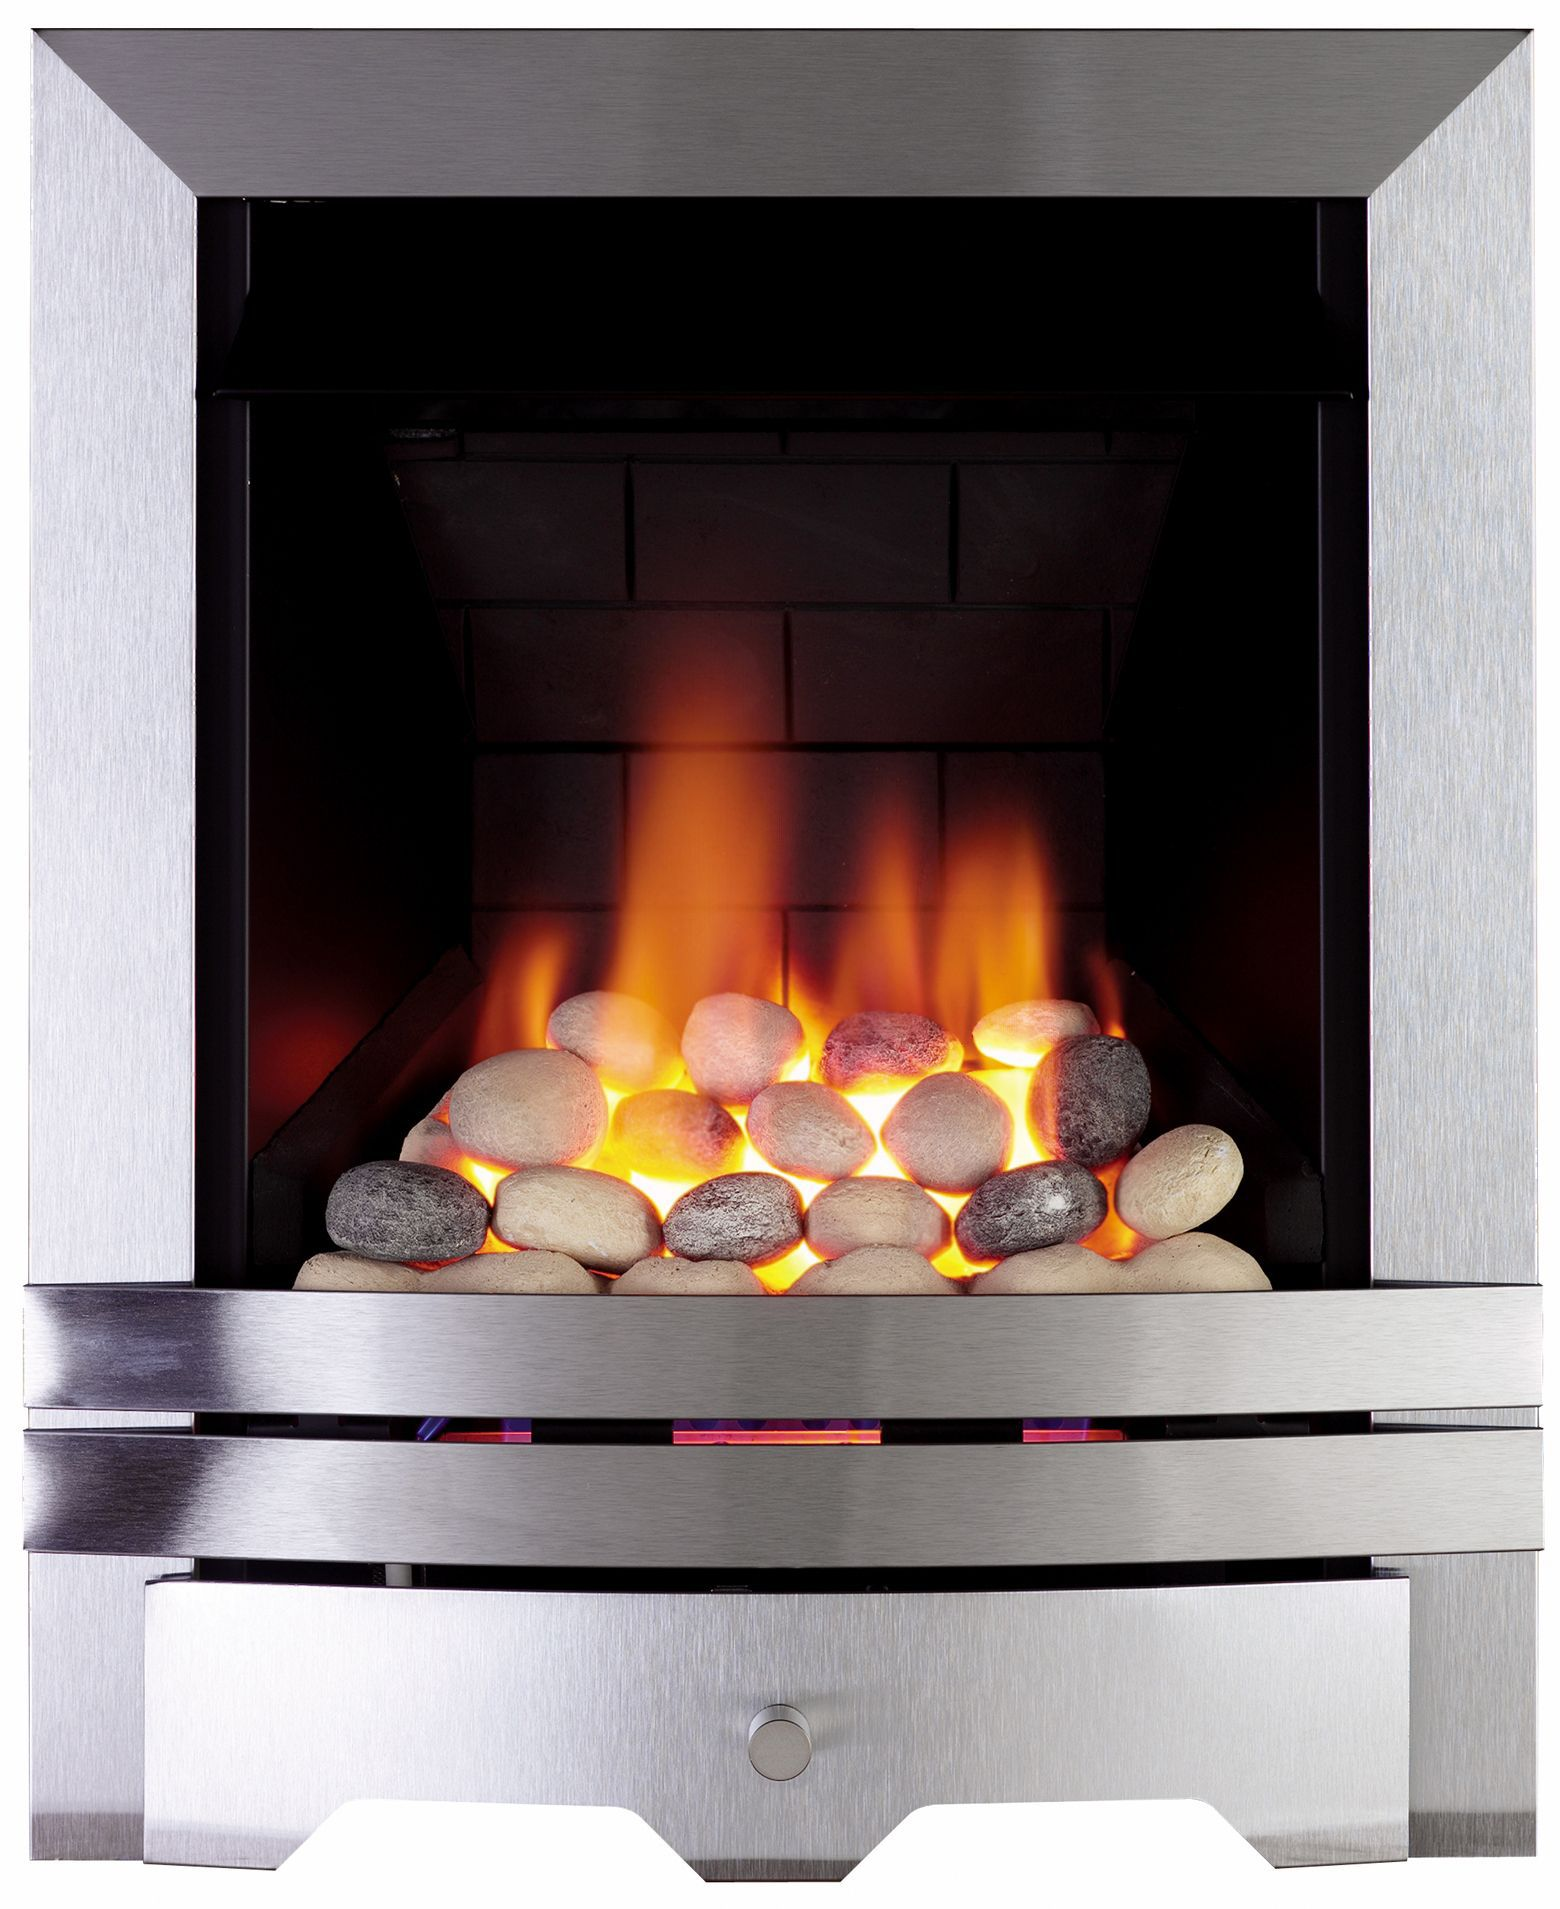 Focal Point Lulworth Brushed Stainless Steel Manual Control Inset Gas Fire Departments